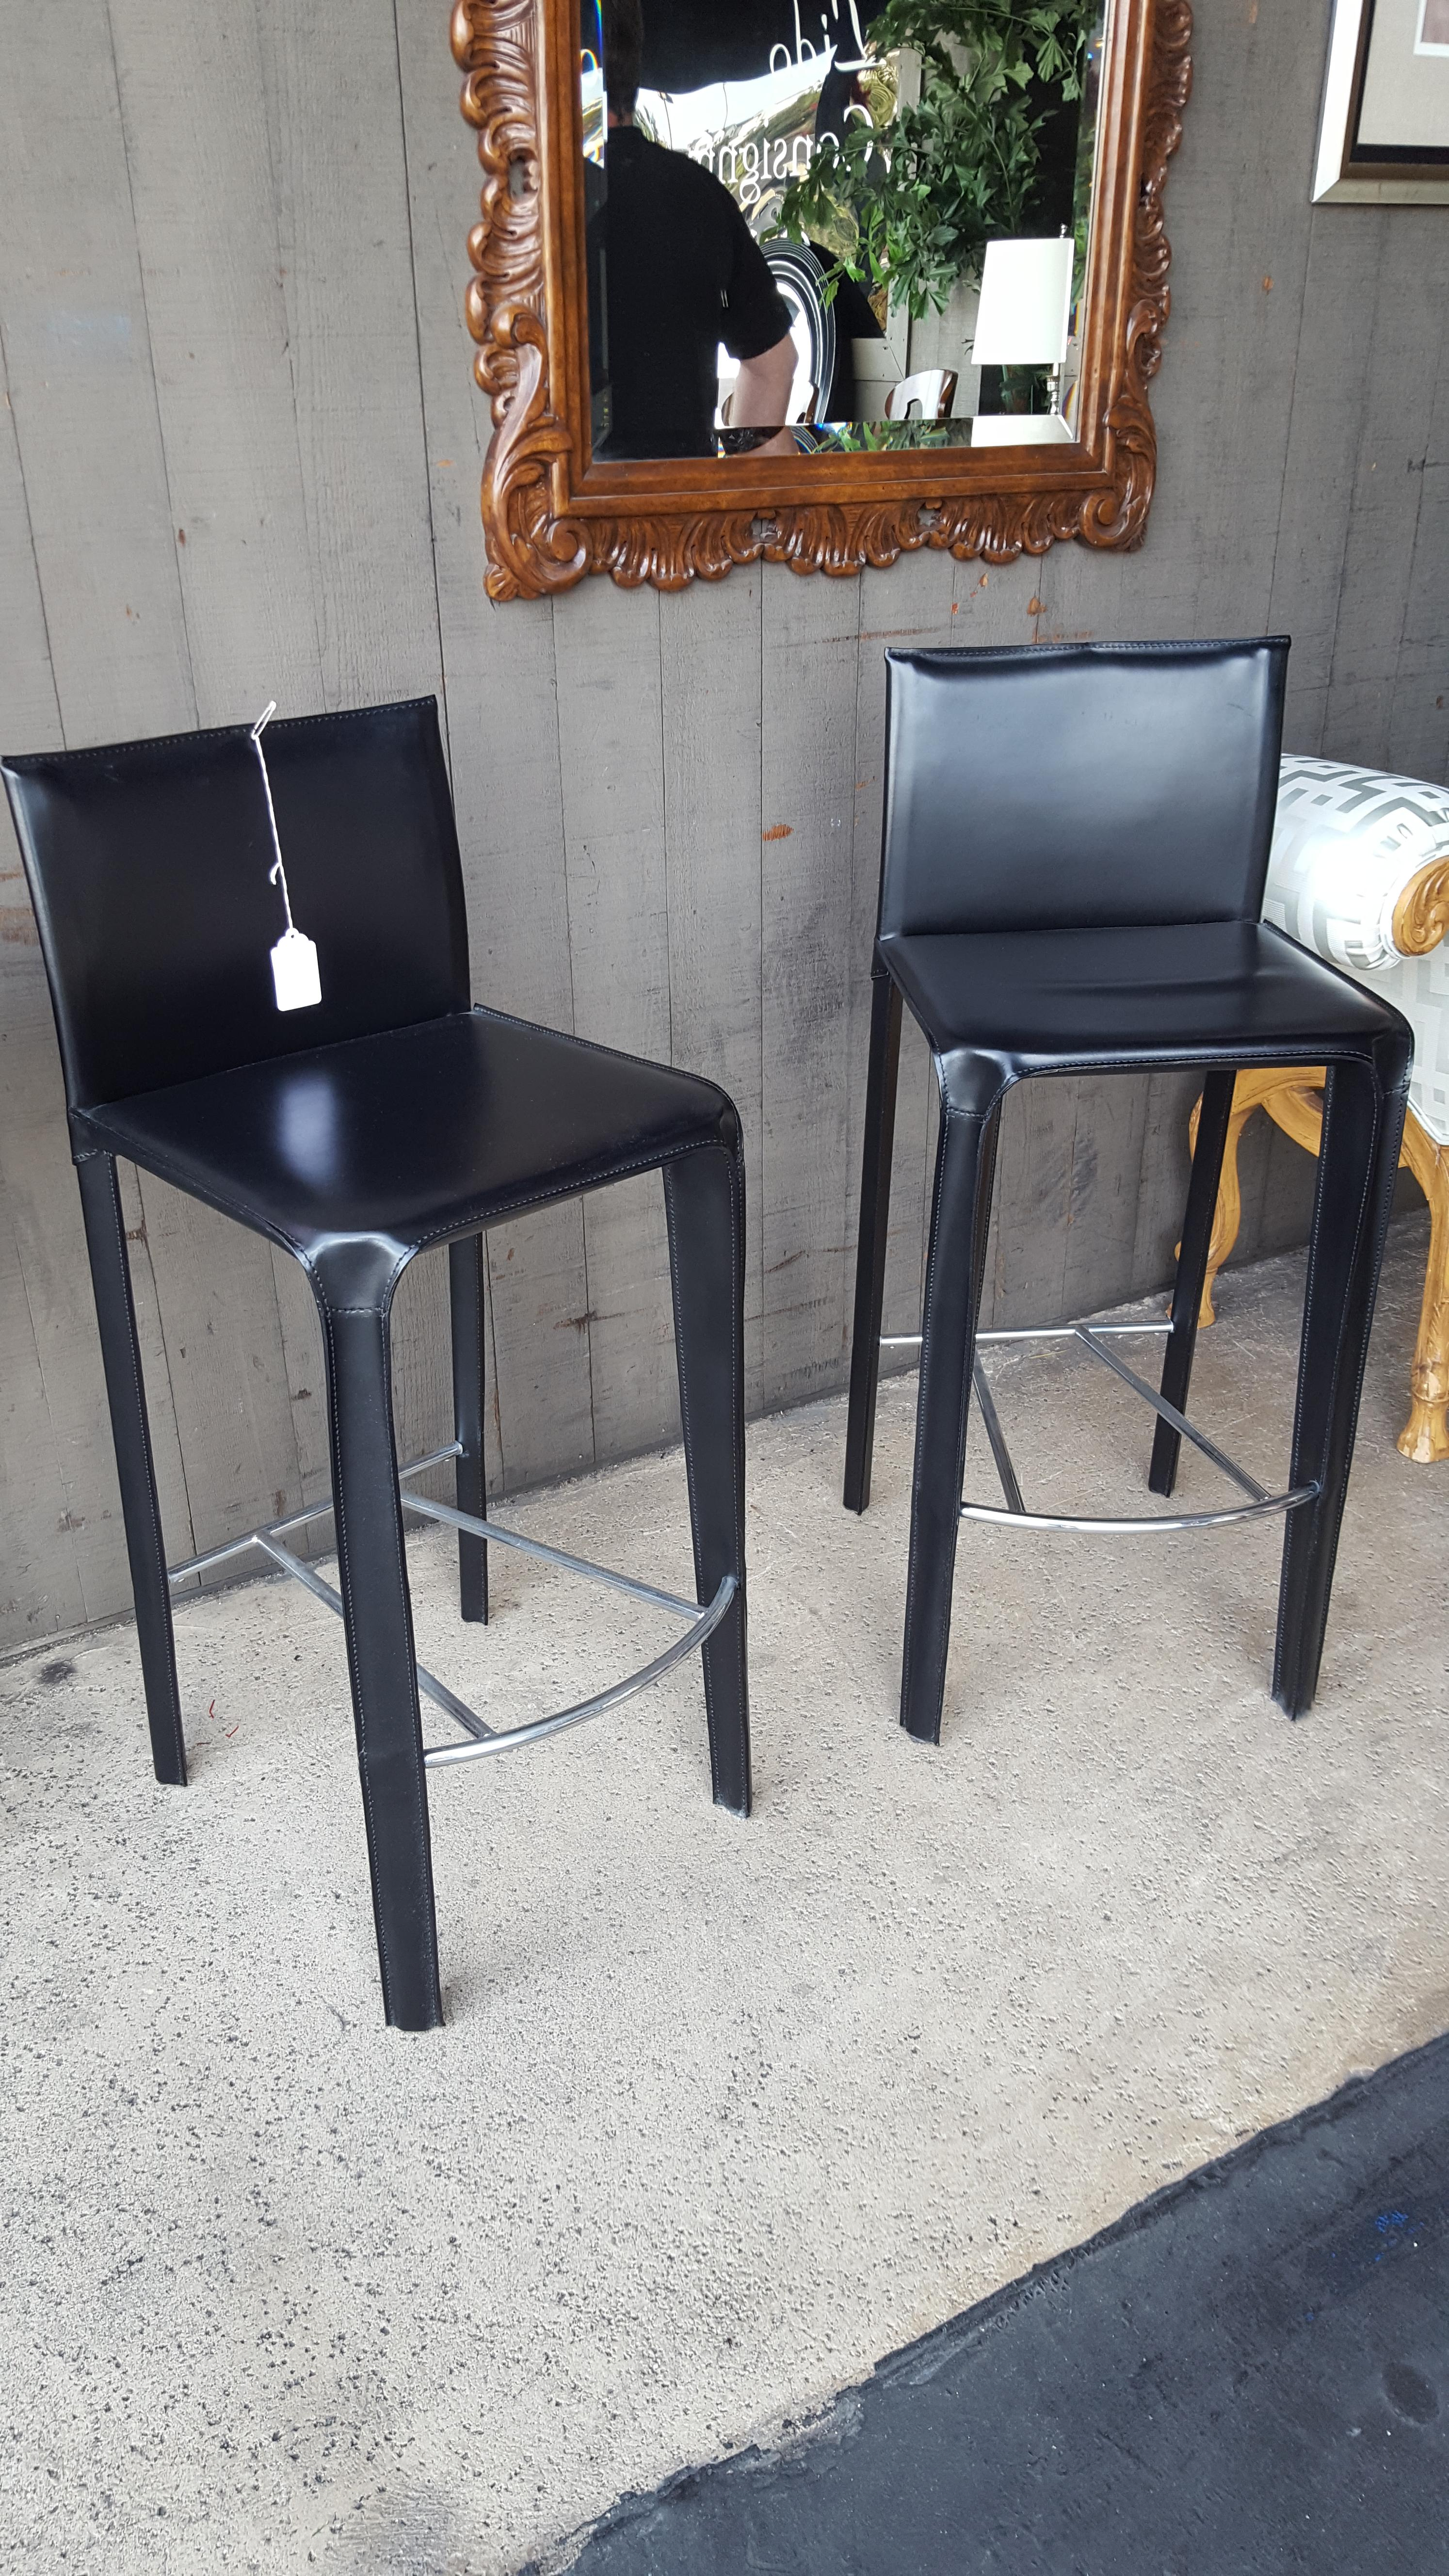 Pair of Arper black Italian Leather Chairs, Benches, Stools Price: $850.00